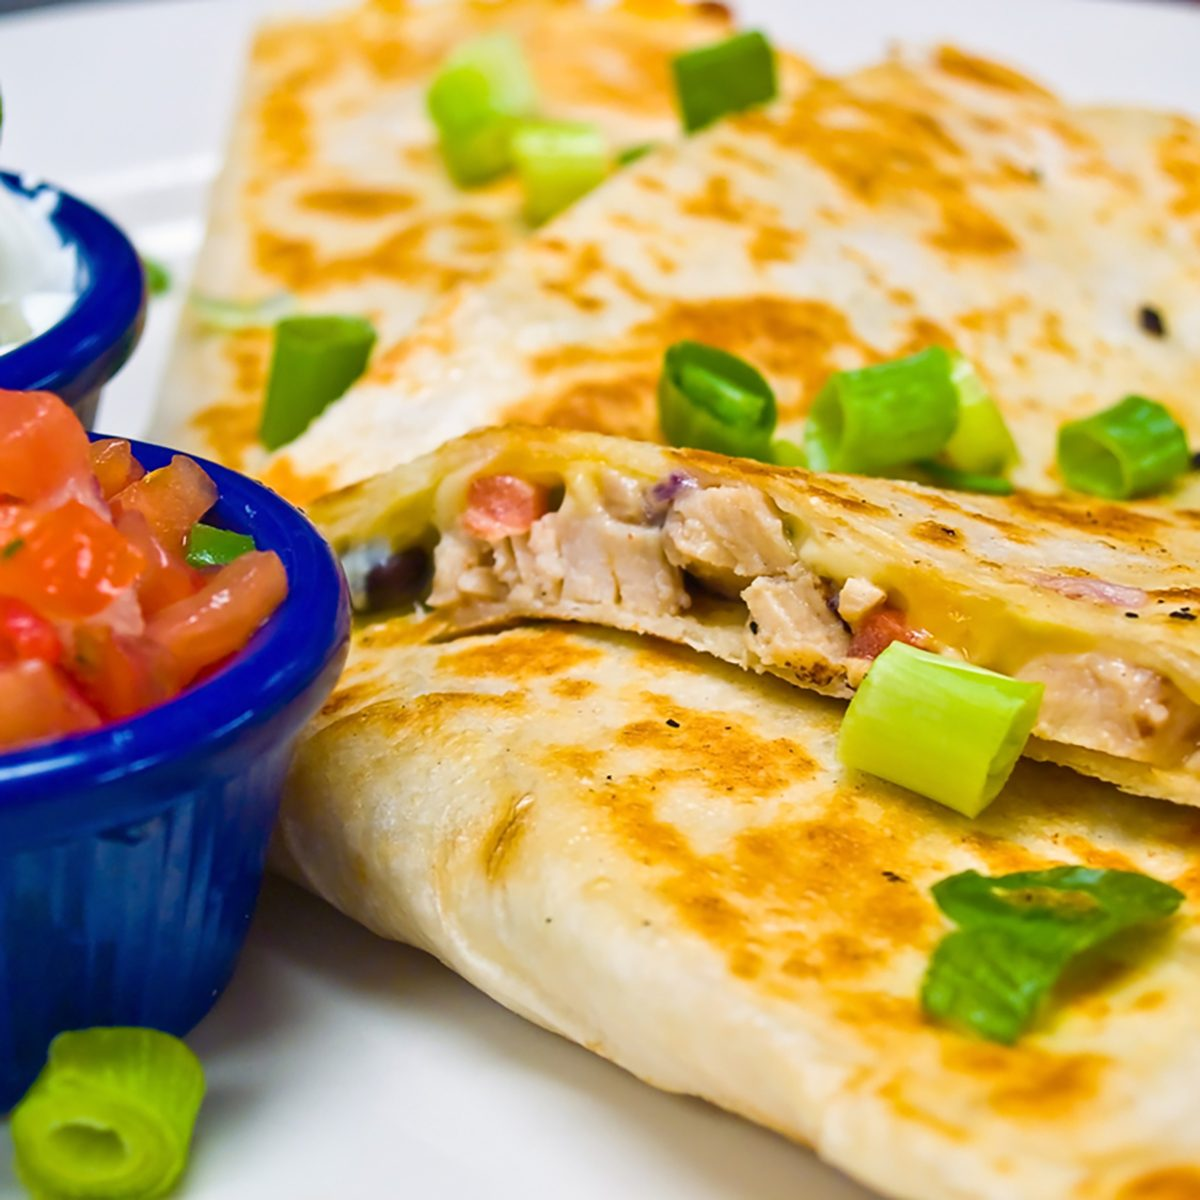 Chicken Quesadilla with Sour Cream and Salsa